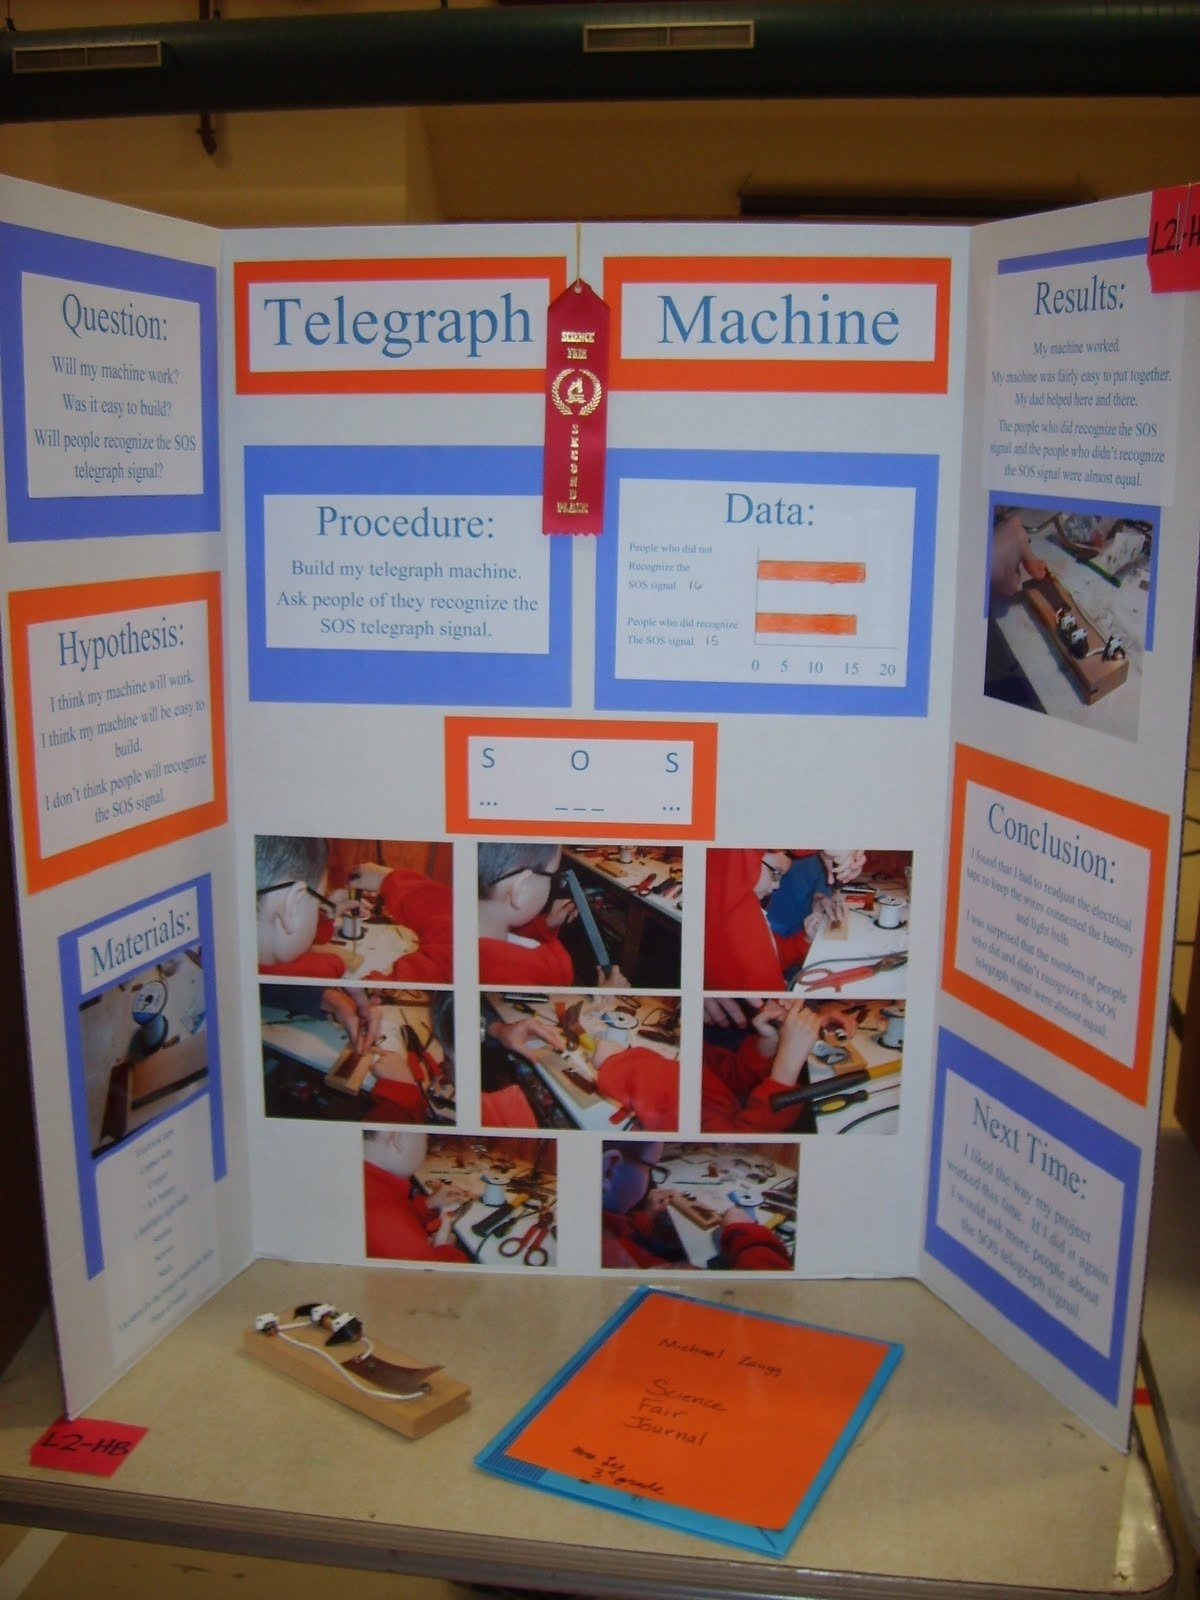 10 Nice Science Fair Ideas For 3Rd Graders easy third grade science projects research paper service 3